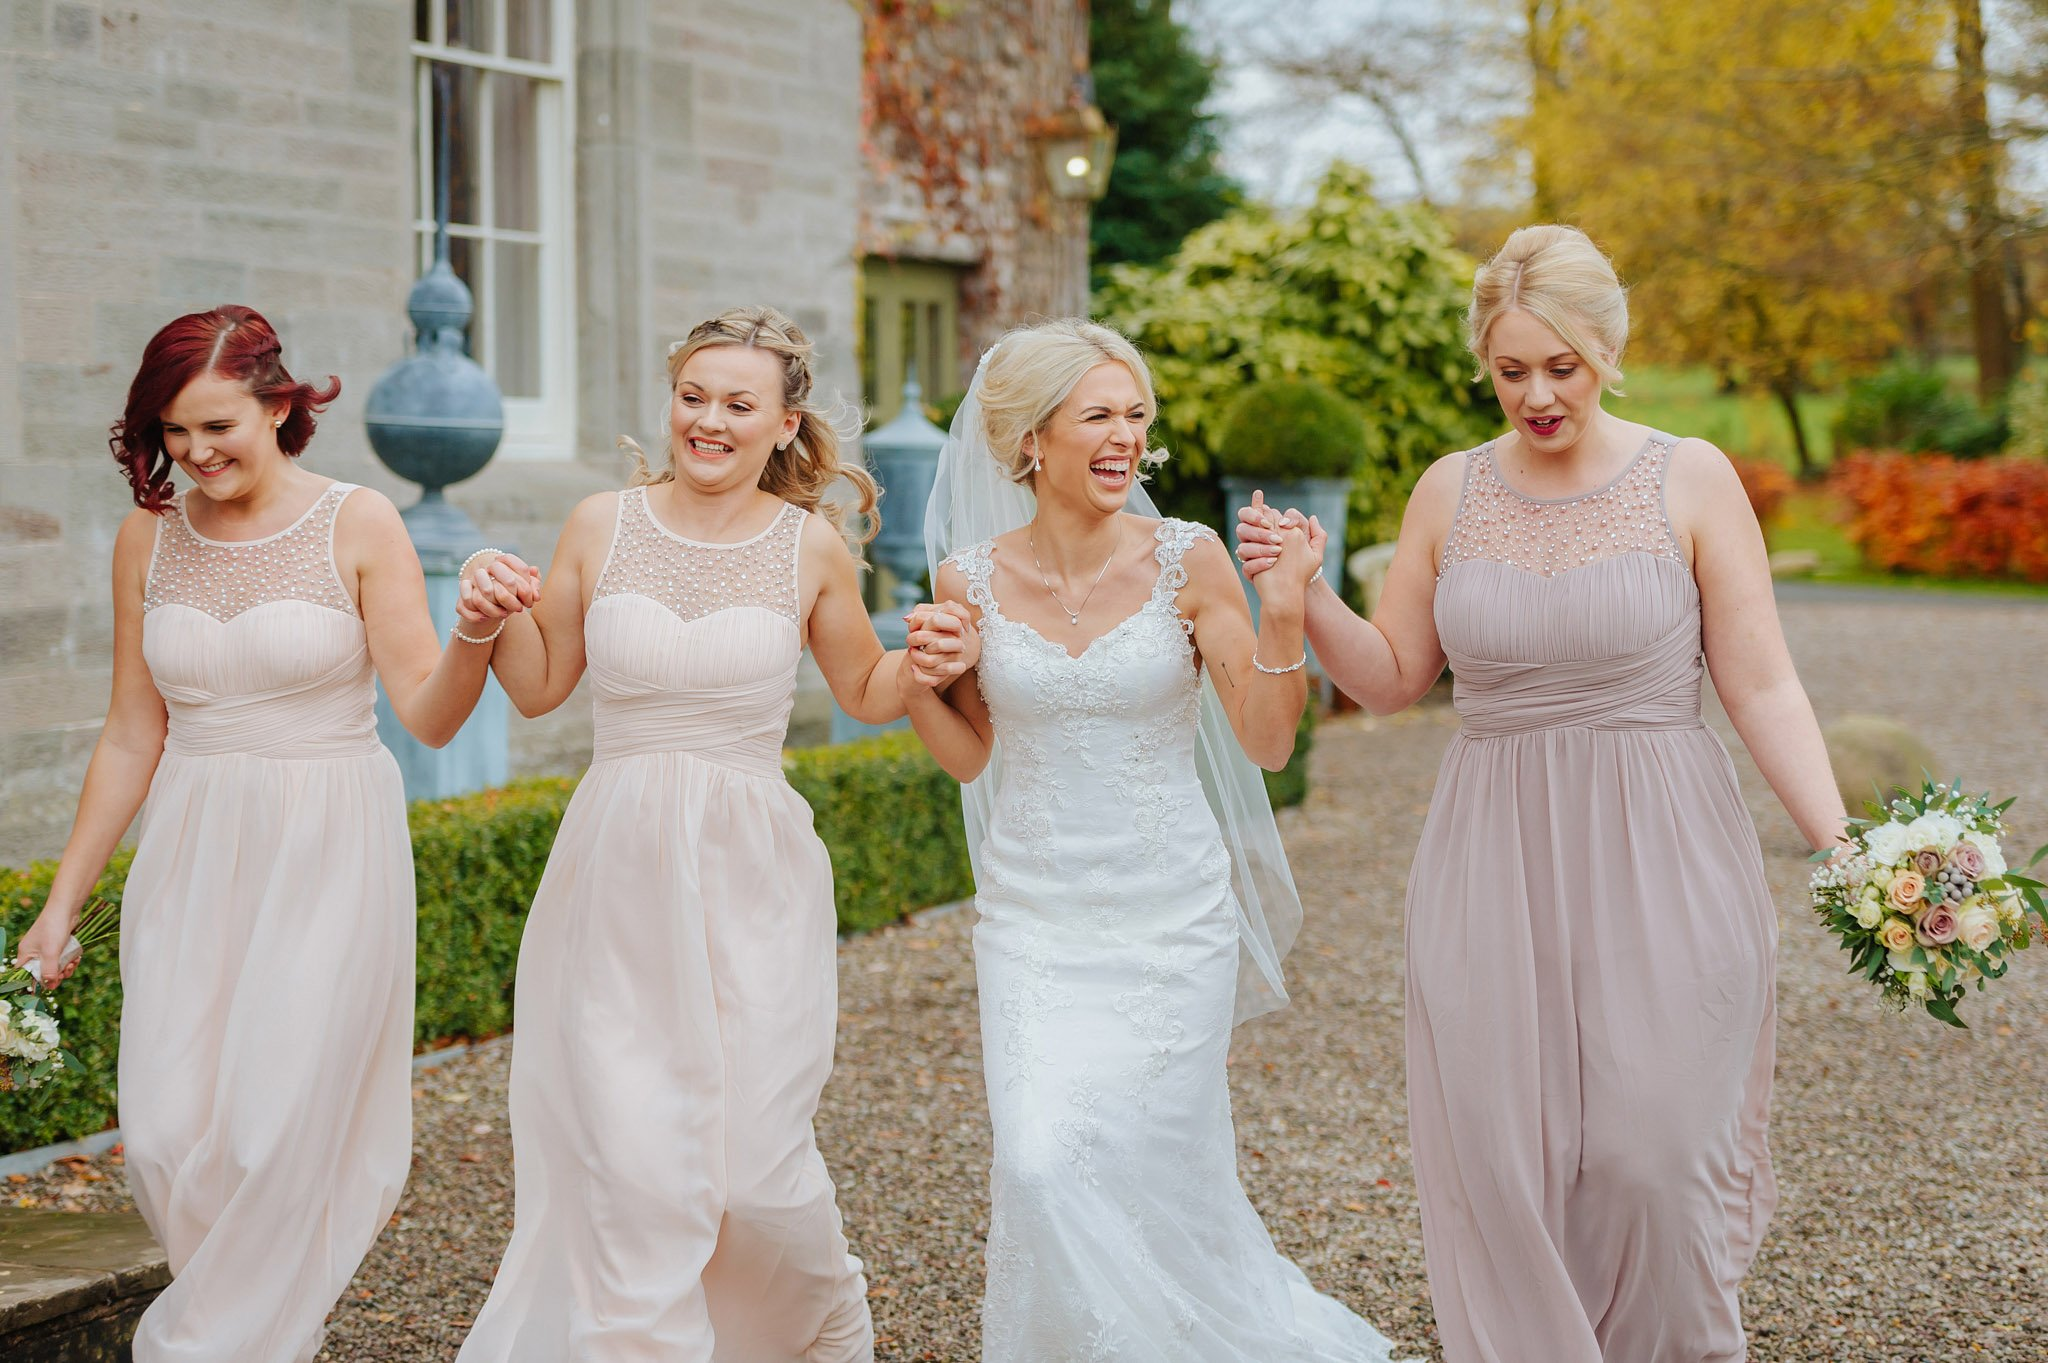 Lemore Manor wedding, Herefordshire - West Midlands | Sadie + Ken 60